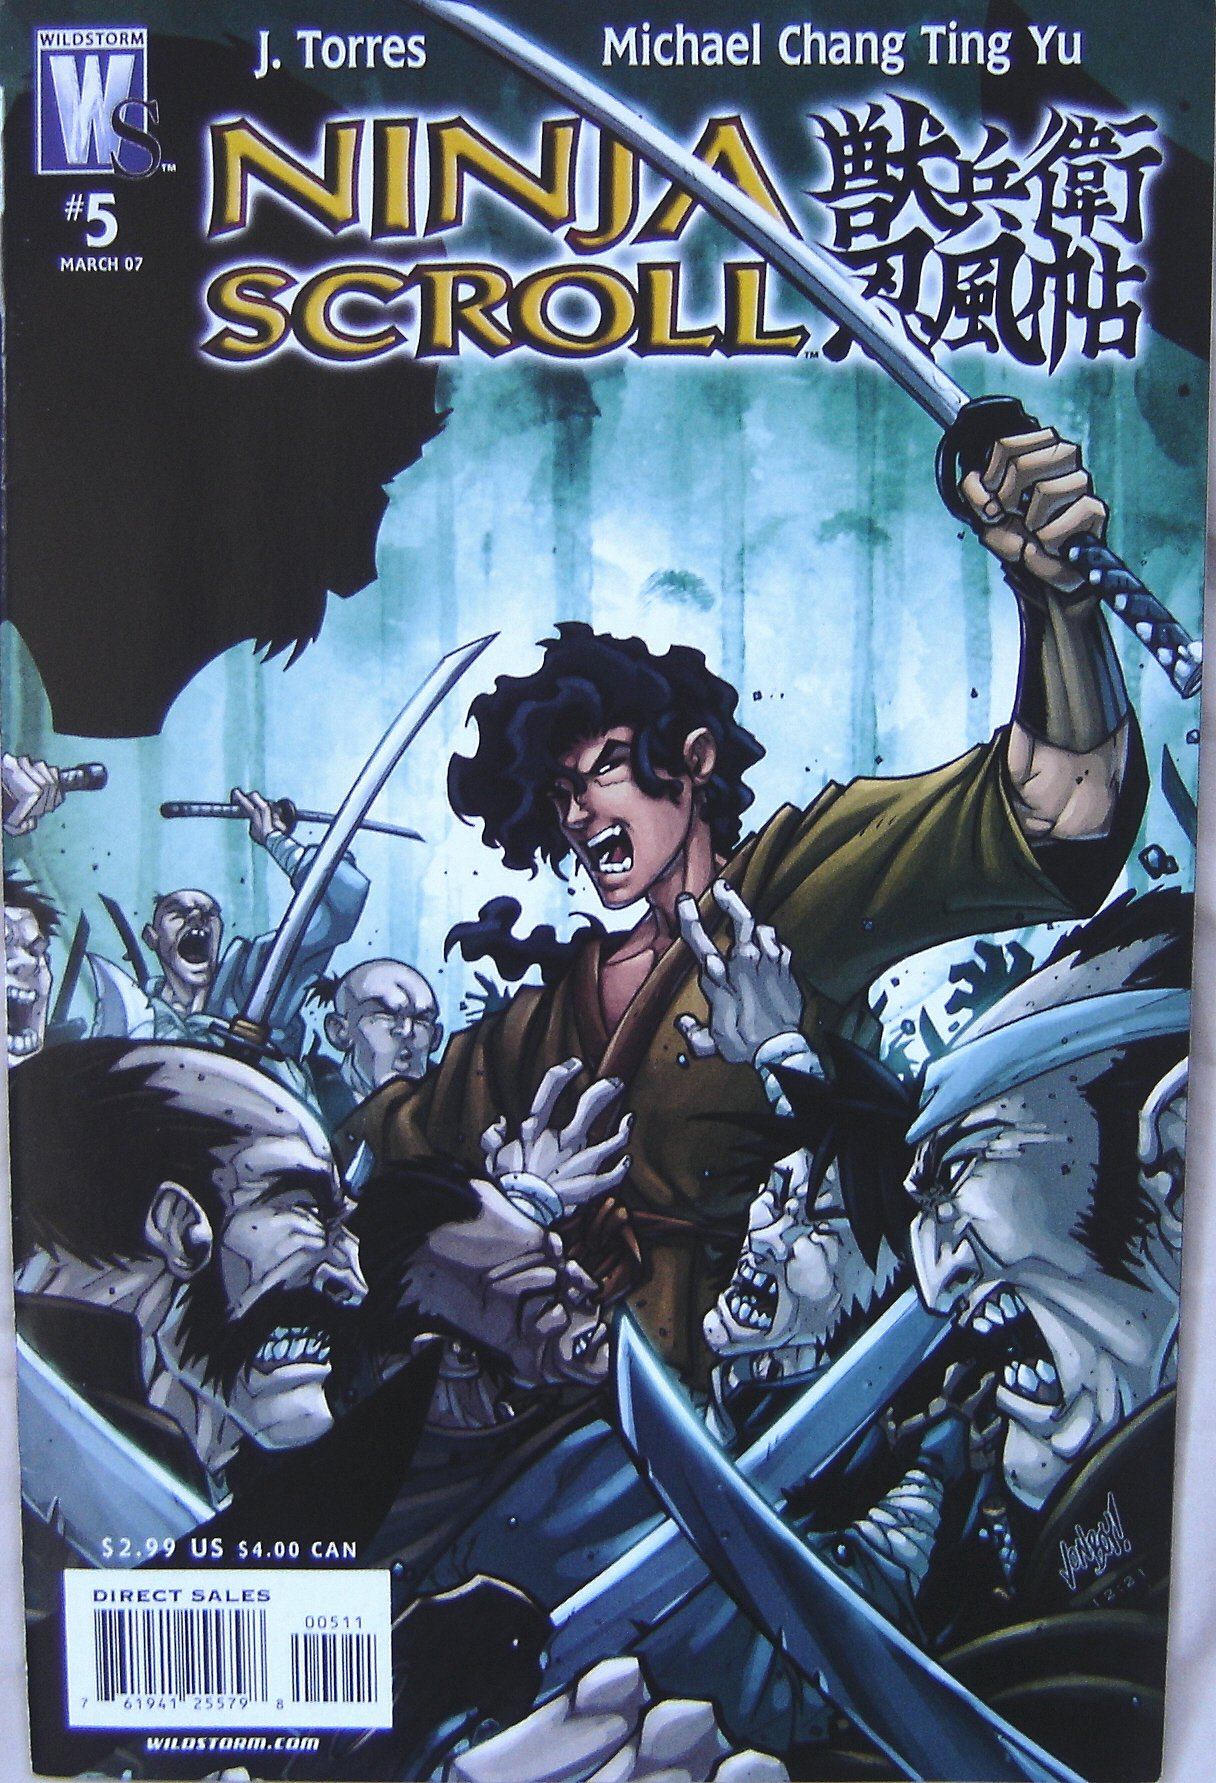 Ninja Scroll Wildstorm Comics # 5 March 2007: Michael Chang ...